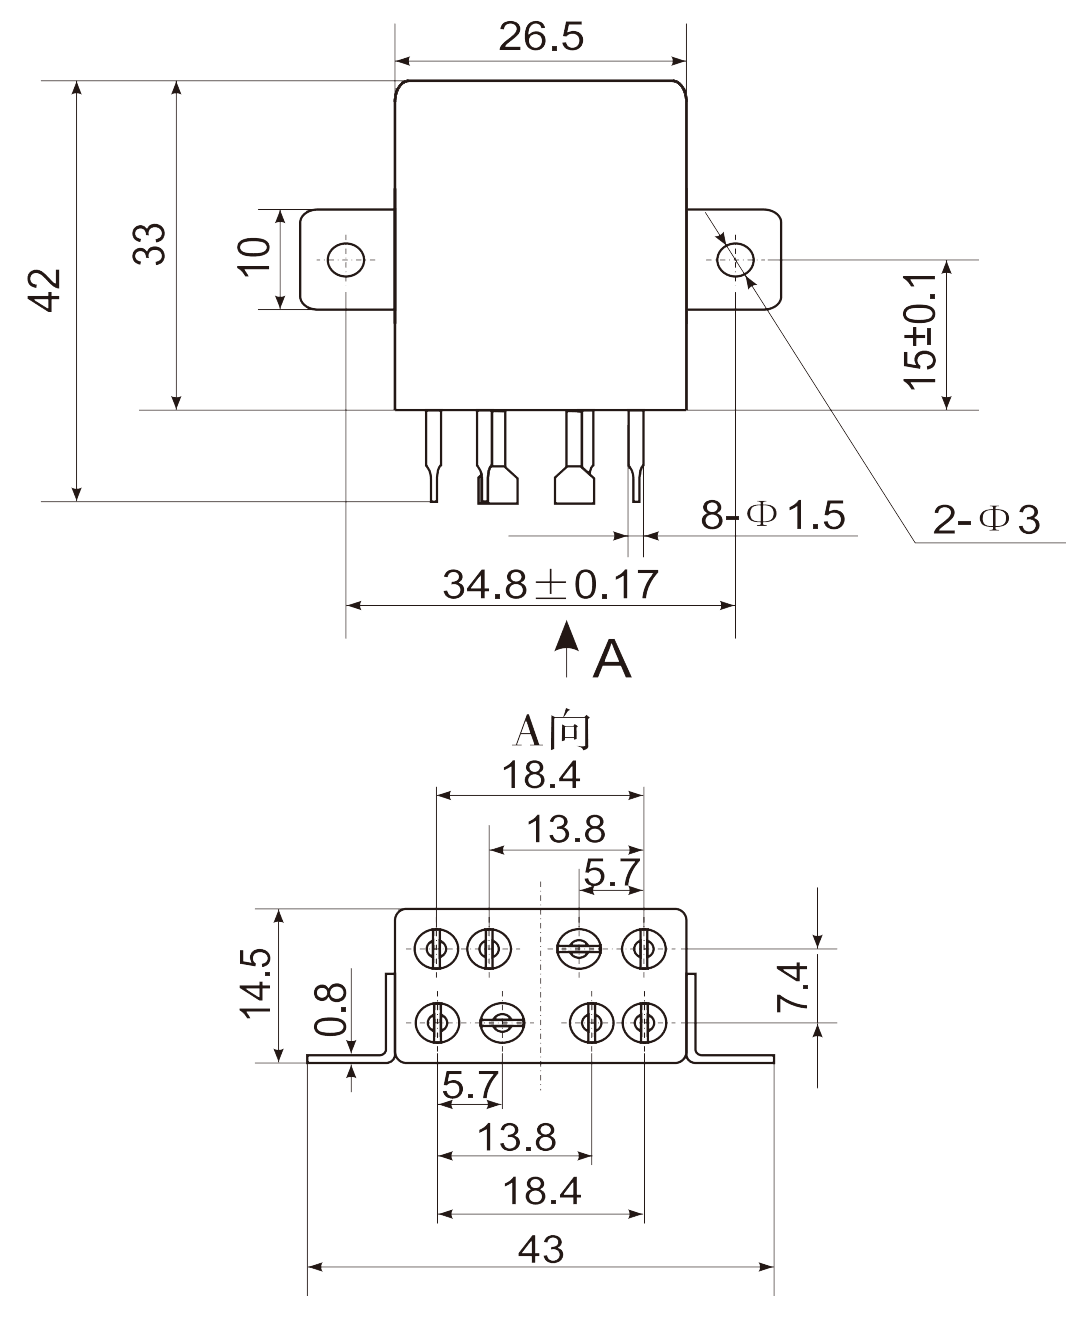 2JGXM 2 Dimension Mounting Style B 3 - 2JGXM-2 Small General-Purpose Relay